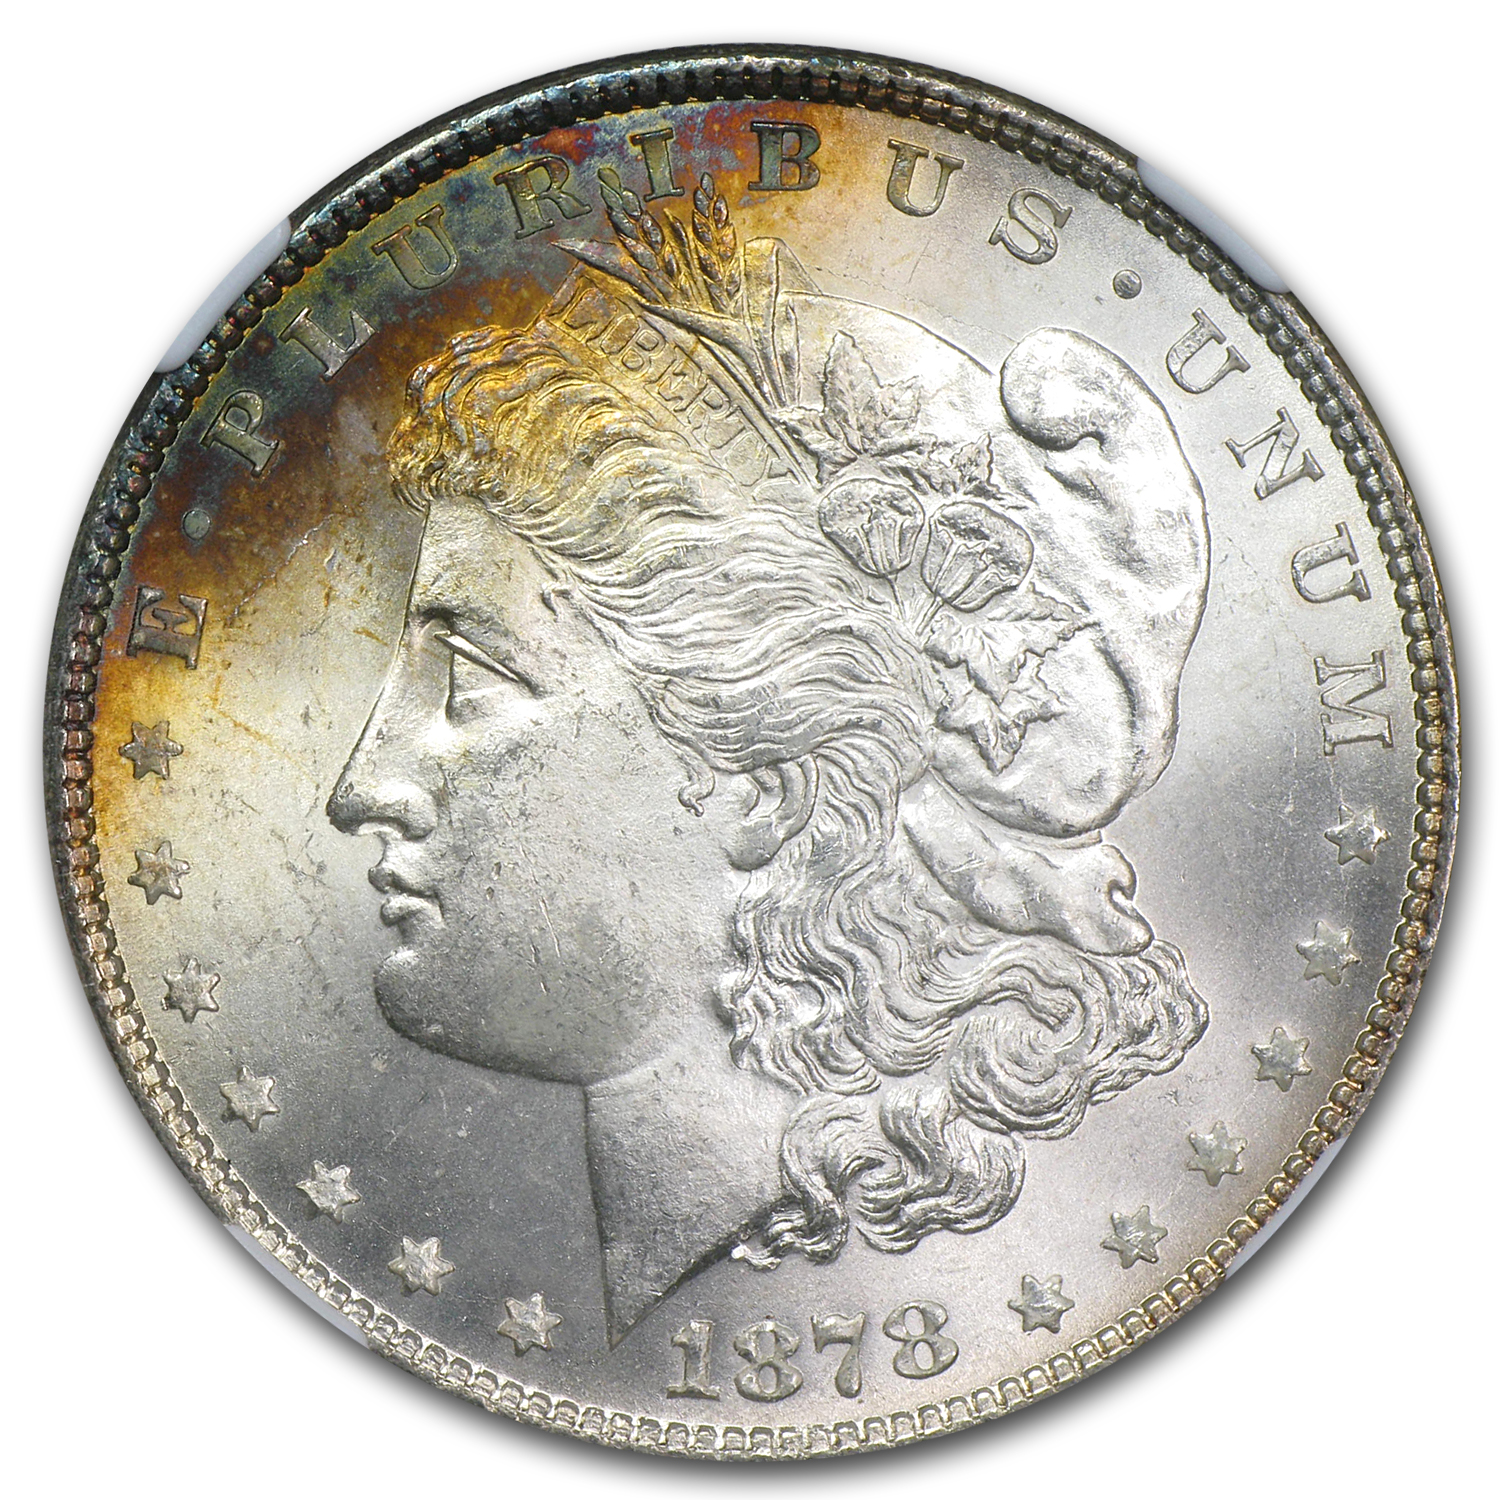 1878 Morgan Dollar - 7 TF Rev. of 78 MS-65 NGC - Toning